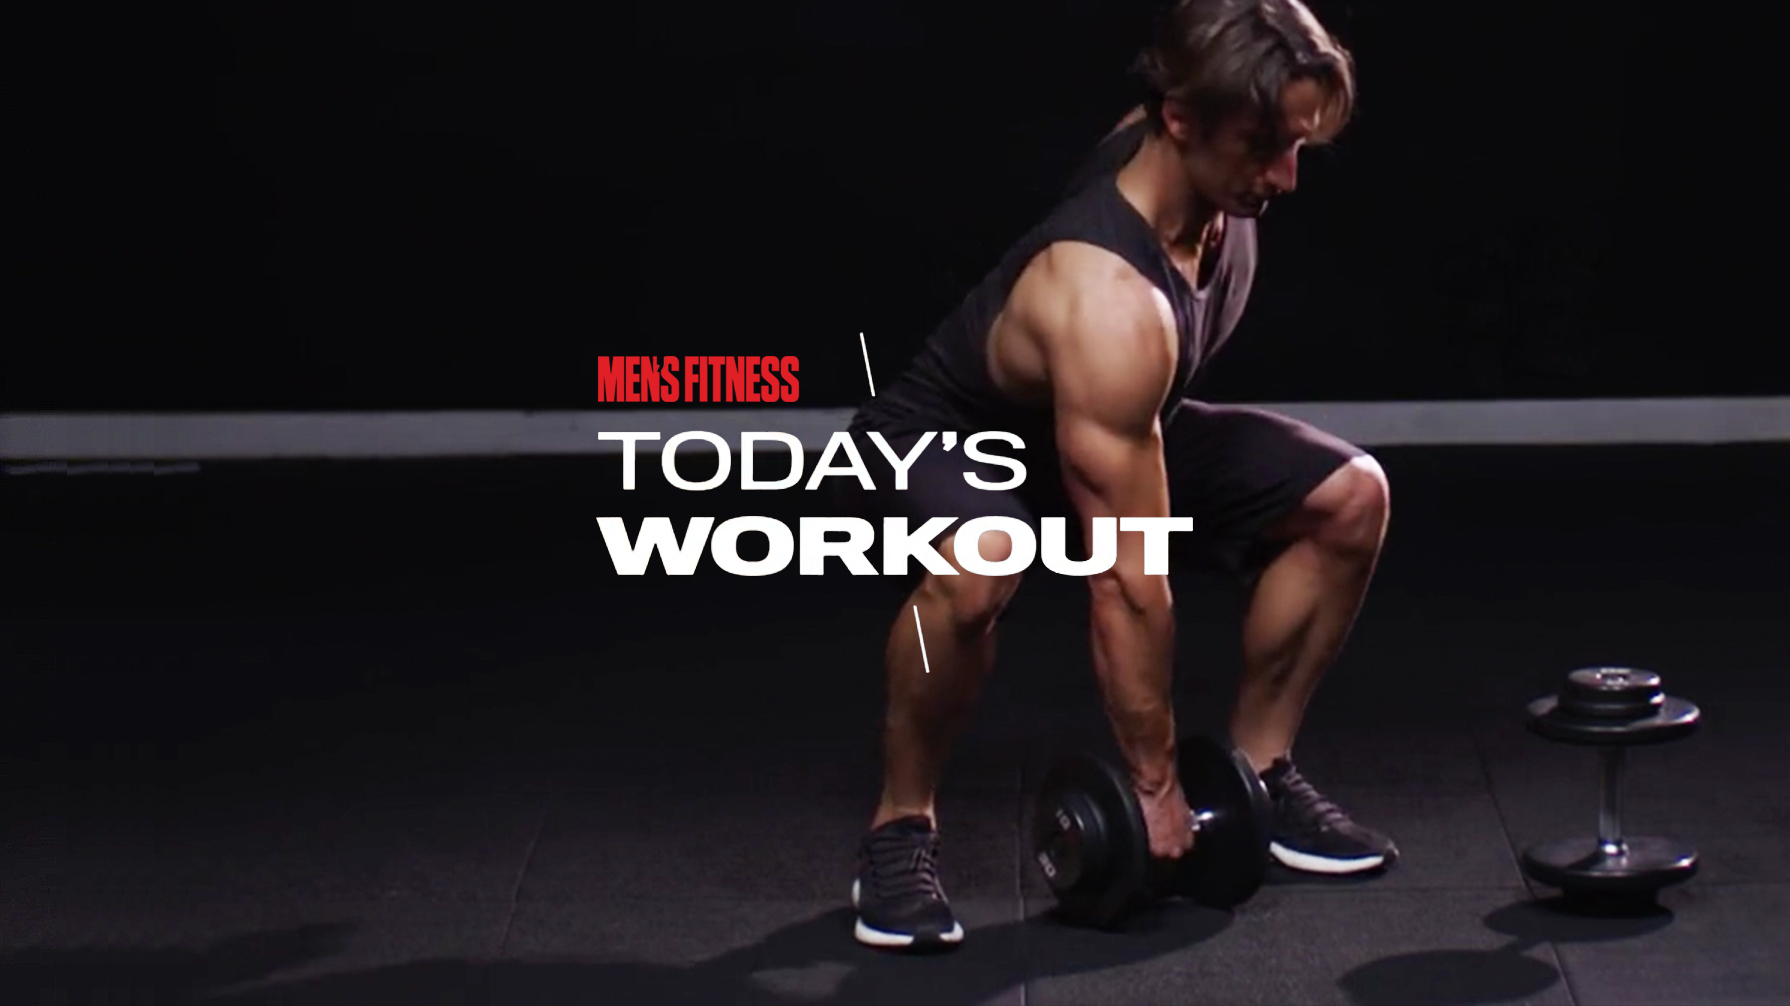 Today's Workout 132: The 15-minute circuit that'll leave you on the floor